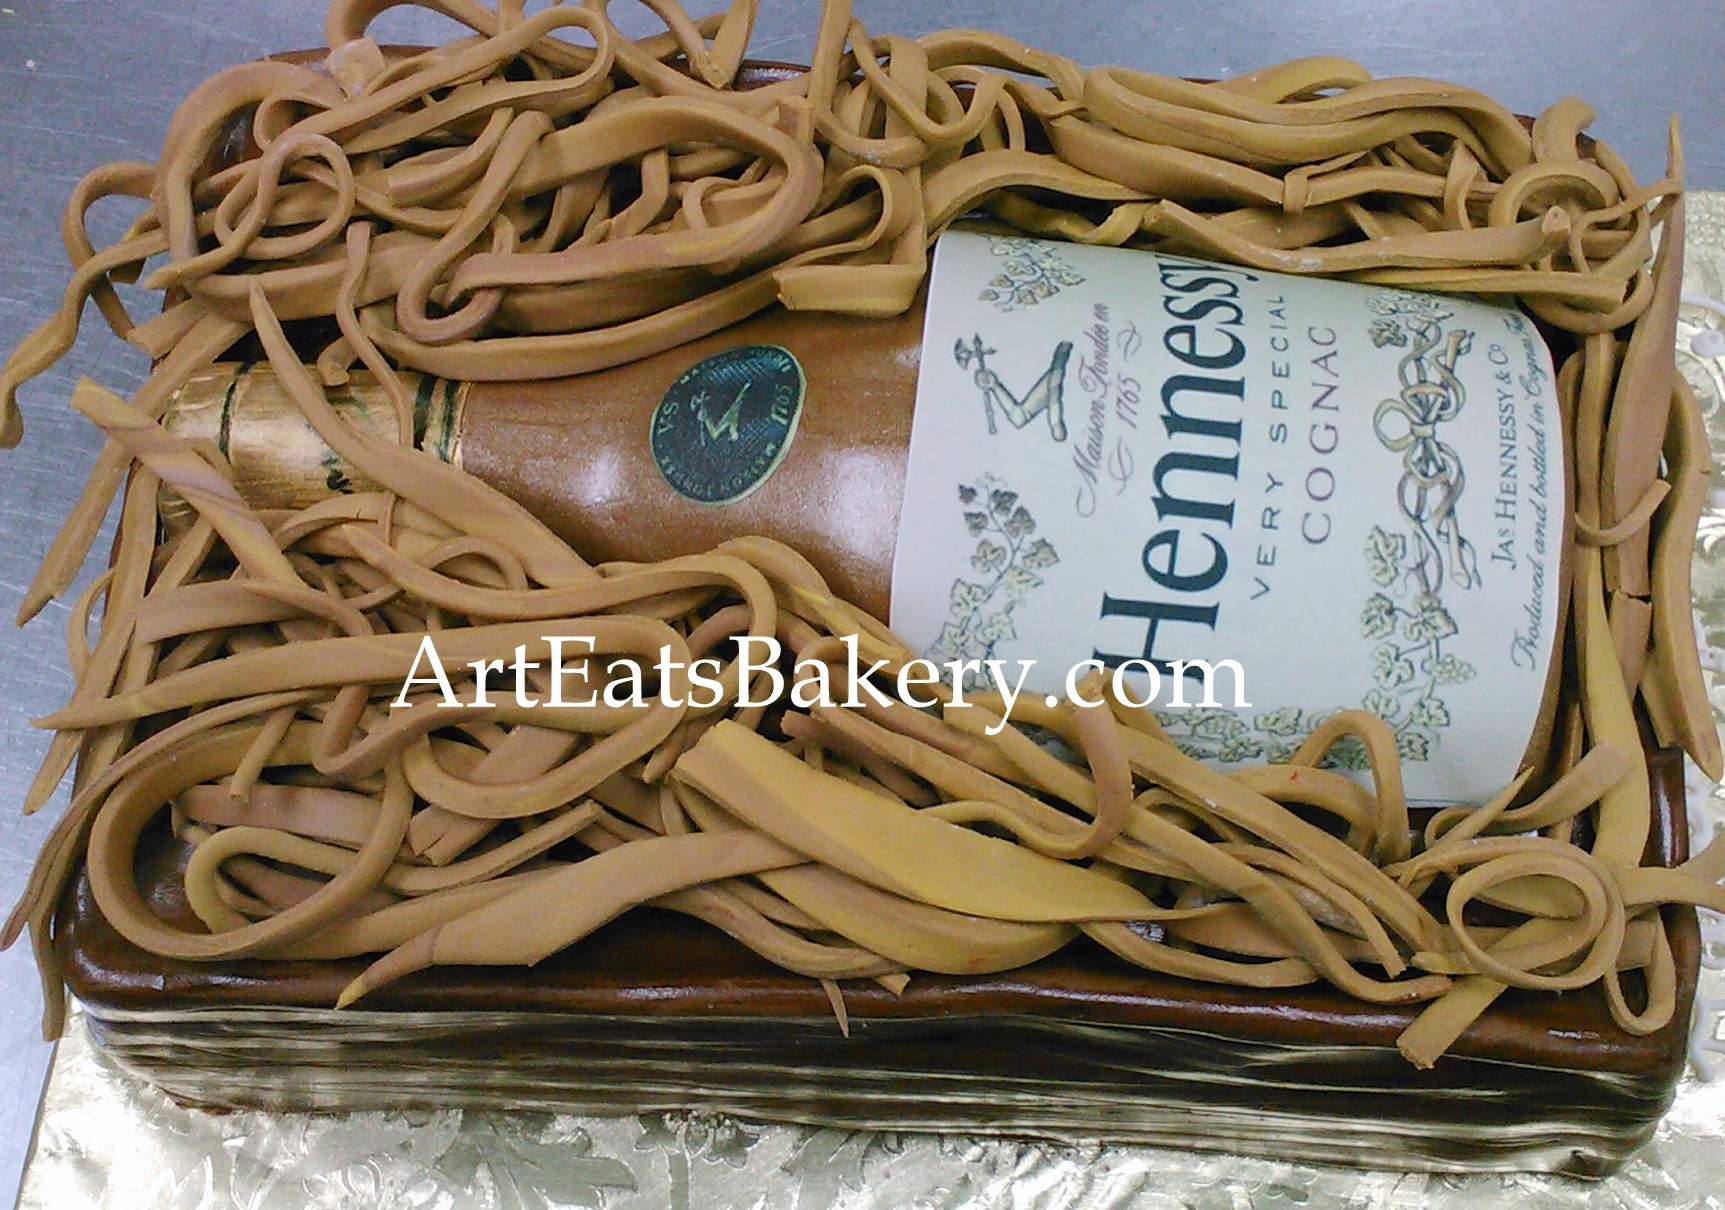 Hennessy bottle in wooden crate with edible straw custom birthday cake design.jpg